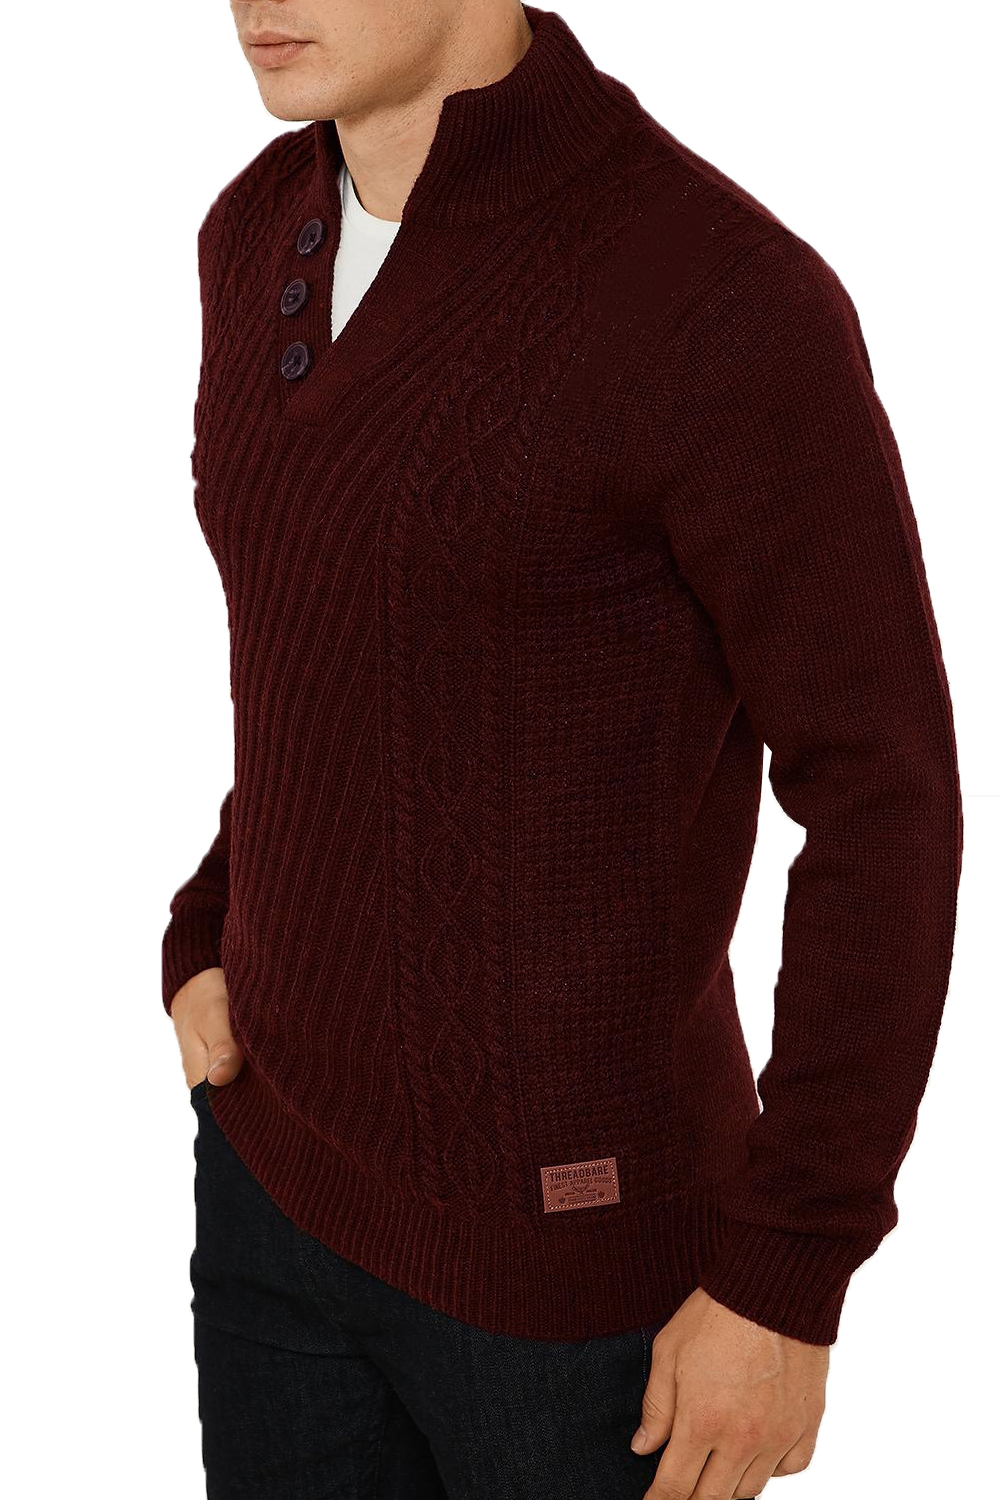 Threadbare-Wray-Mens-Top-Cable-Knited-Designer-Luxurious-Wool-Mix-Raglan-Jumpers thumbnail 7